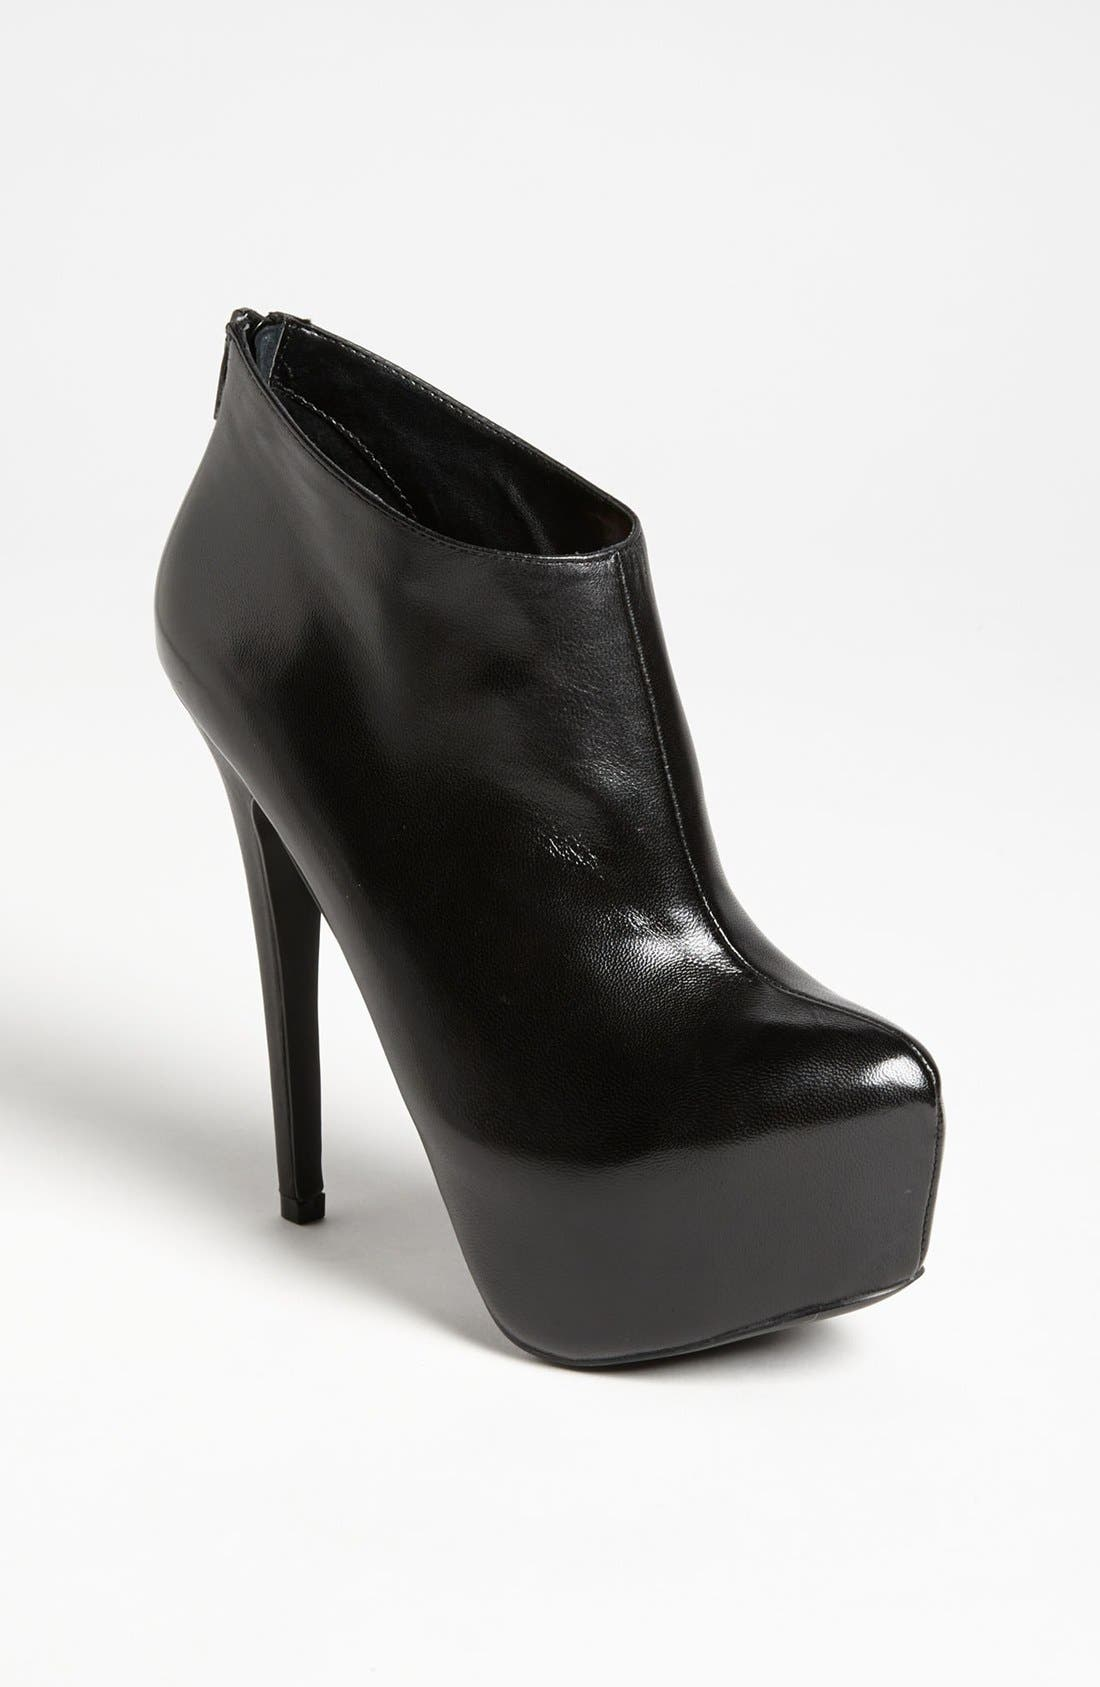 Main Image - Steve Madden 'Dafni' Bootie